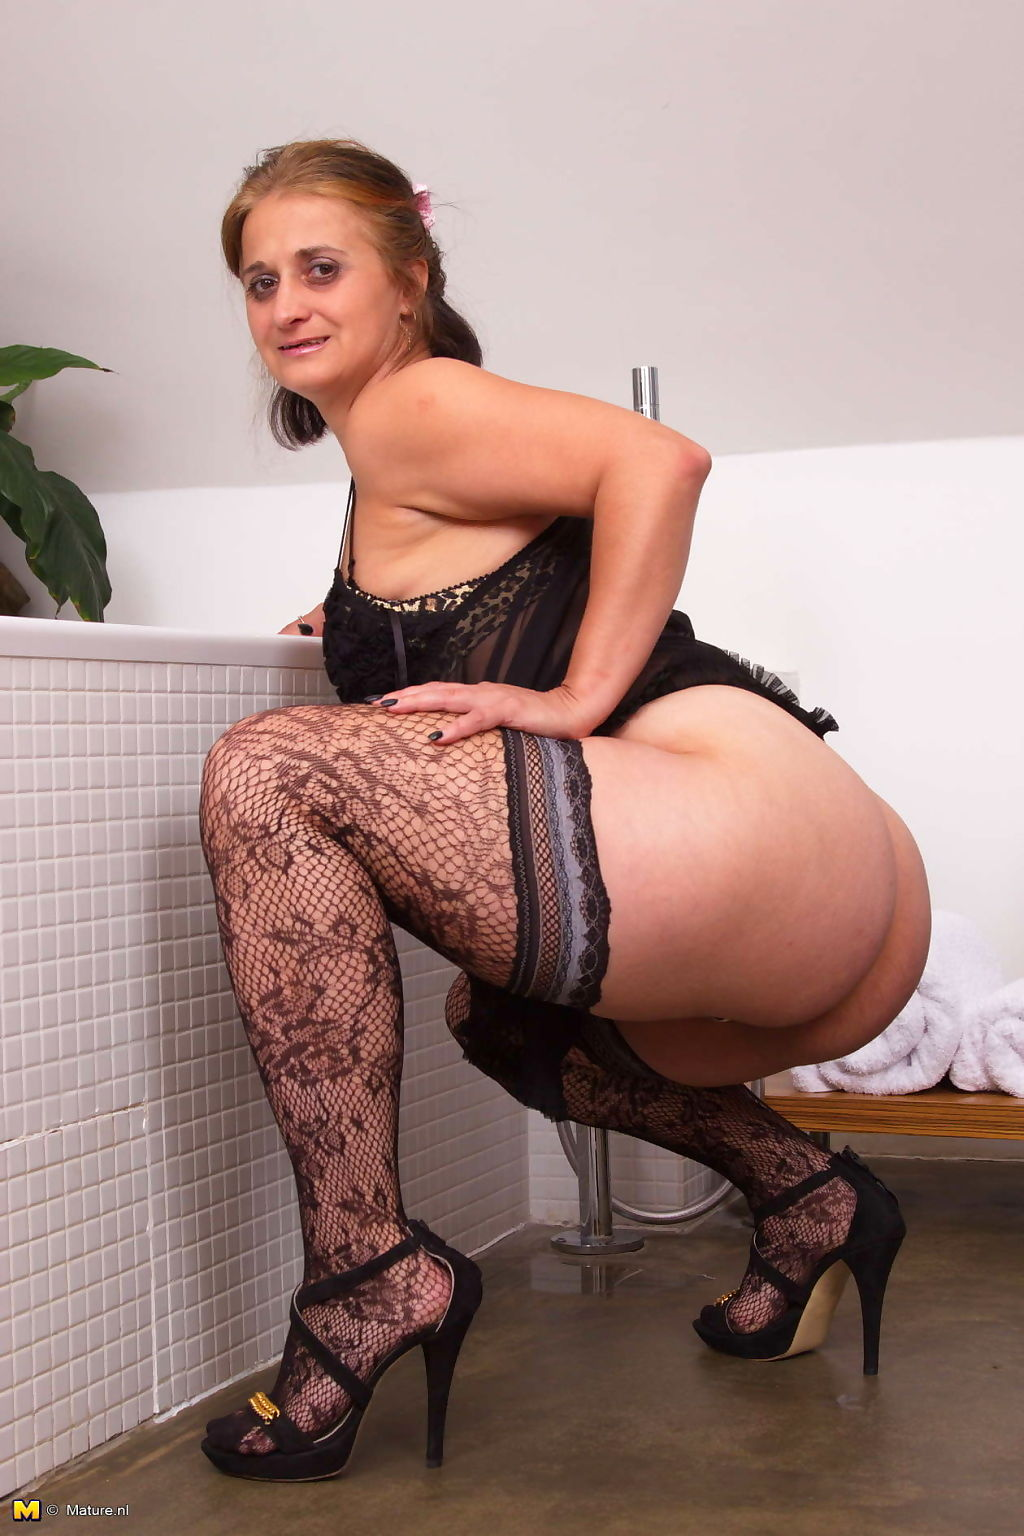 Horny housewife gitting ready to play - part 3241